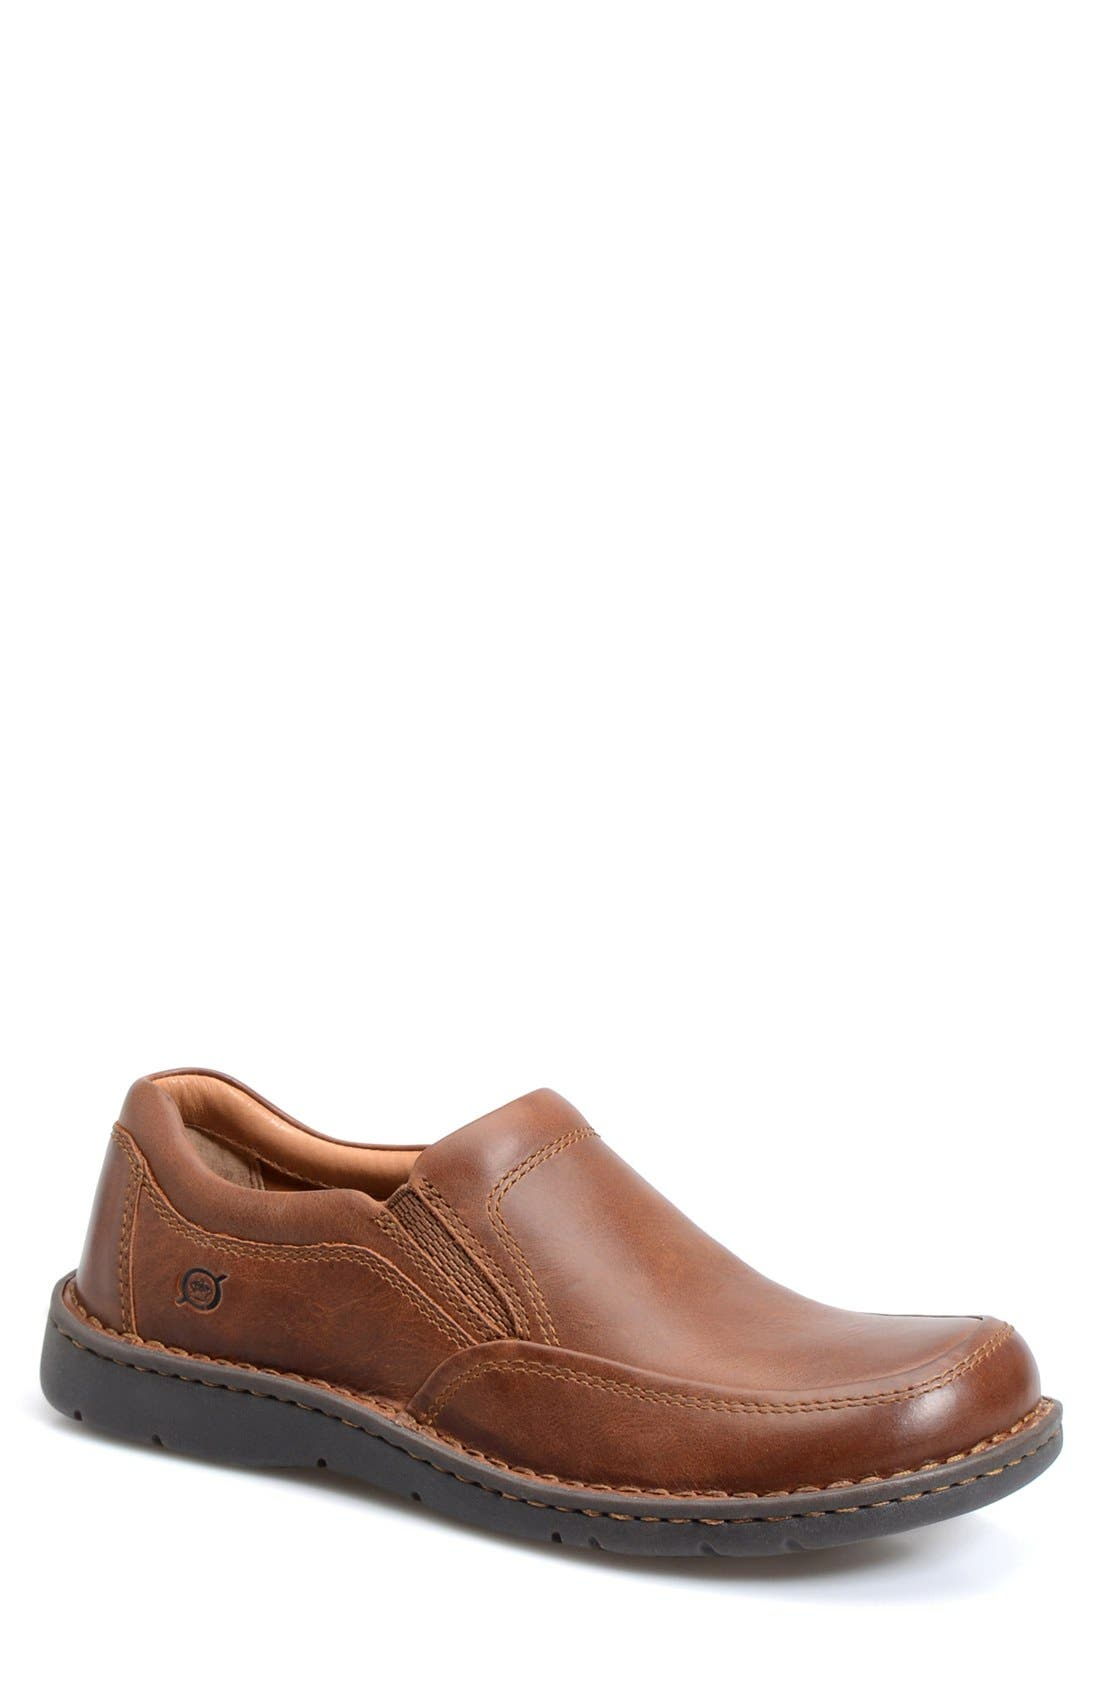 'Luis' Slip-On,                             Main thumbnail 1, color,                             Tan